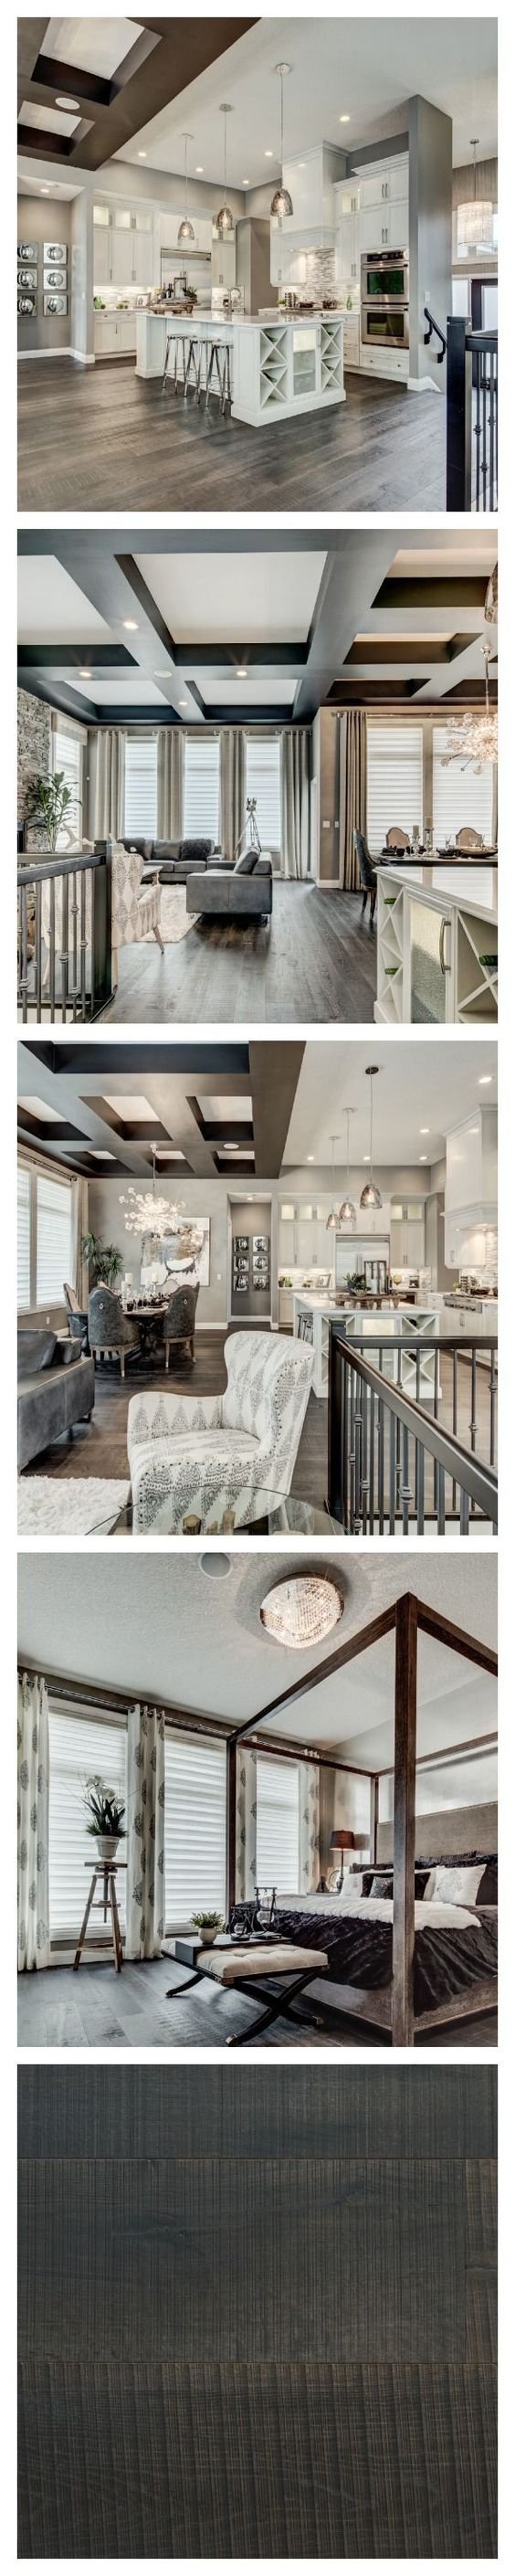 Wow! This house looks stunning! Check out that open concept - http://centophobe.com/wow-this-house-looks-stunning-check-out-that-open-concept/